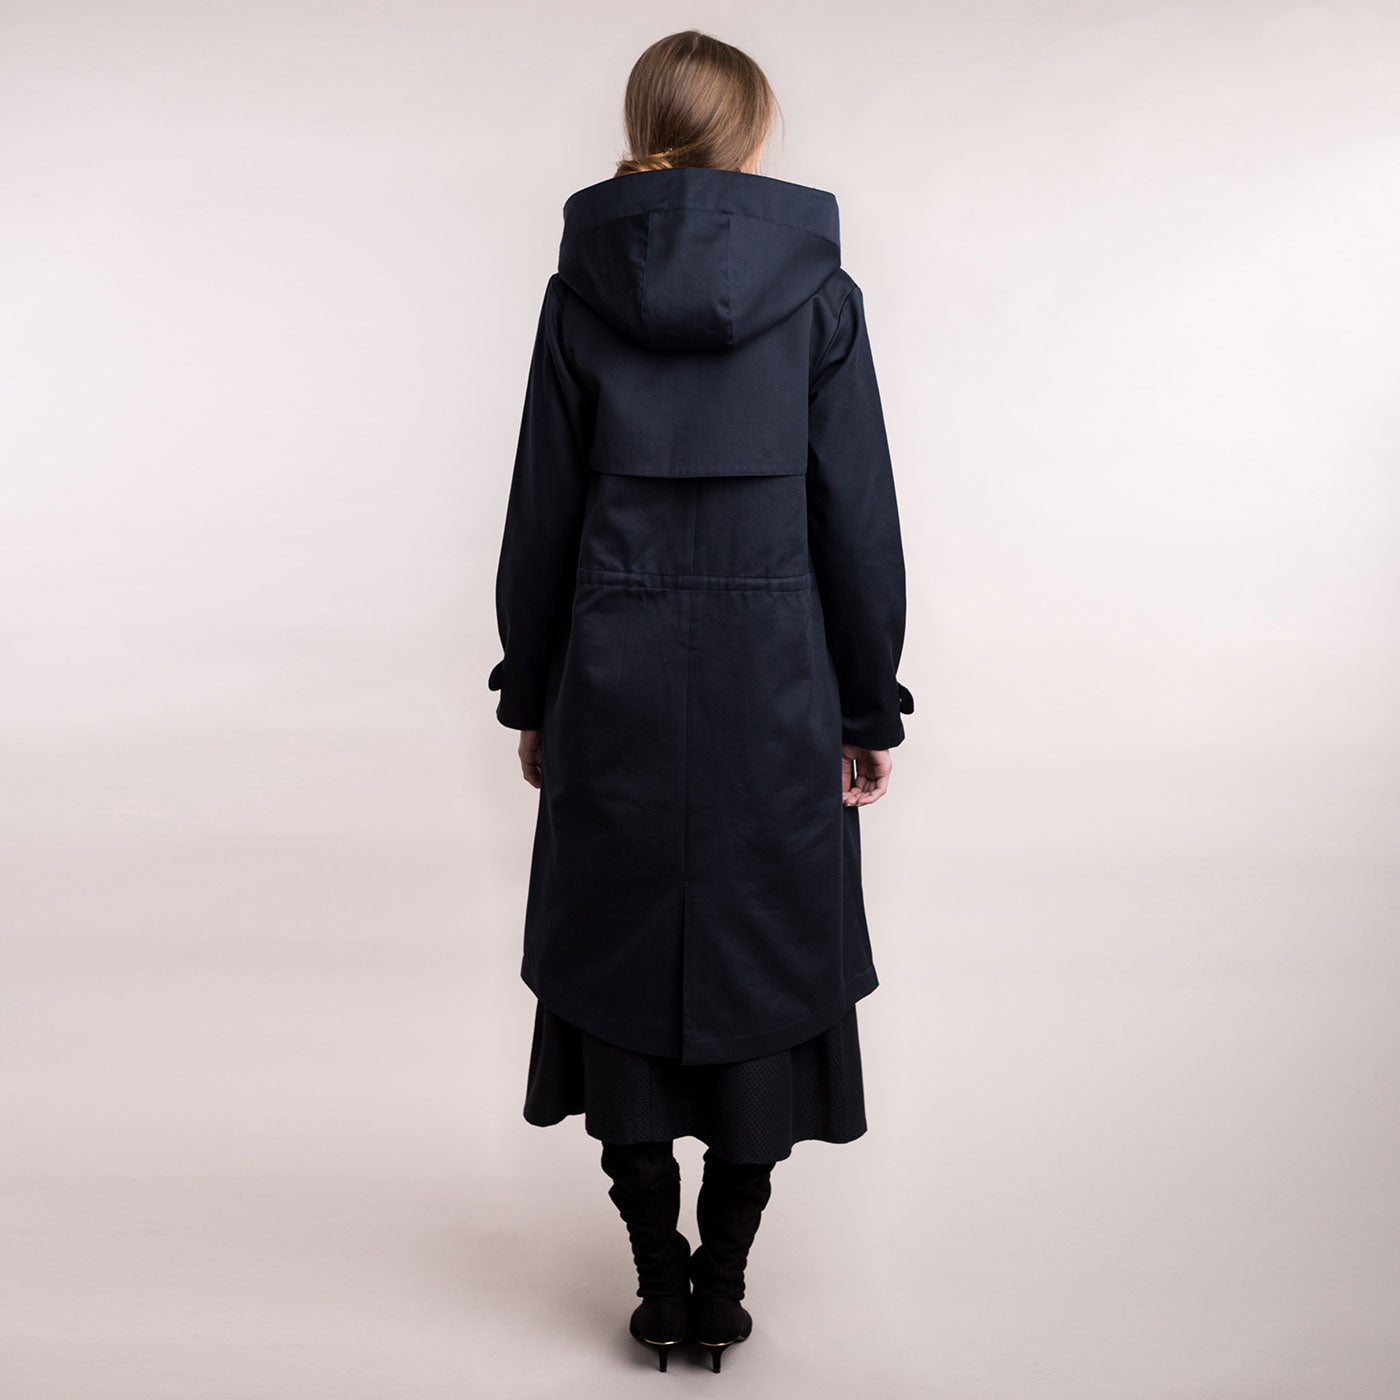 The model wears a dark blue sustainable organic cotton hooded water-resistant coat, back view.